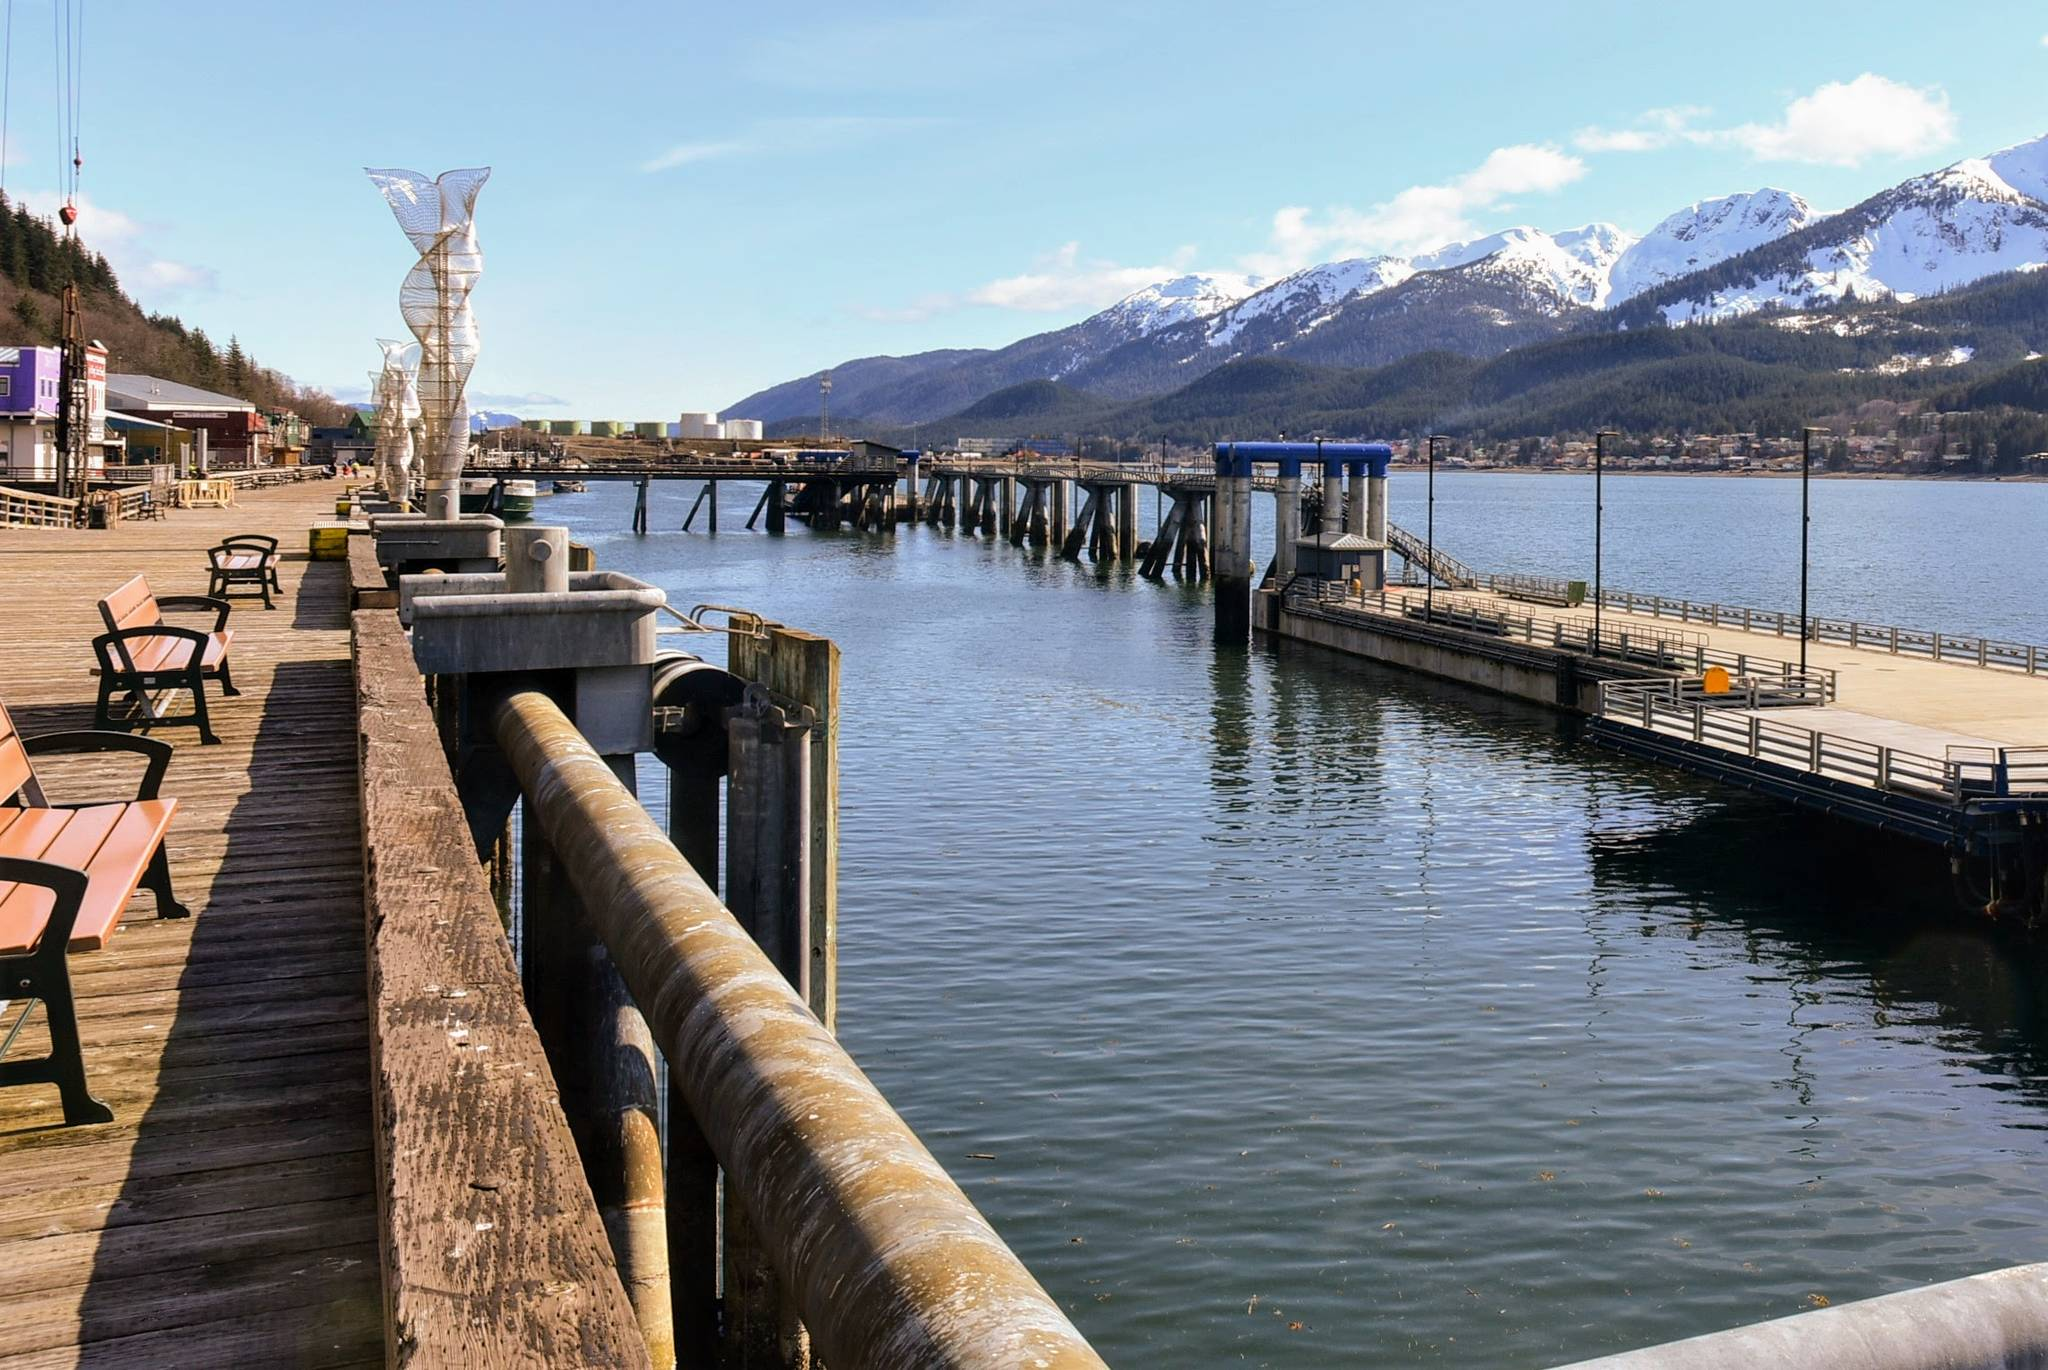 Lack of cruise ships relying on shore power from Alaska Electric Light and Power will not affect customers, said an AEL&P vice president on June 29, 2020. (Peter Segall / Juneau Empire File)